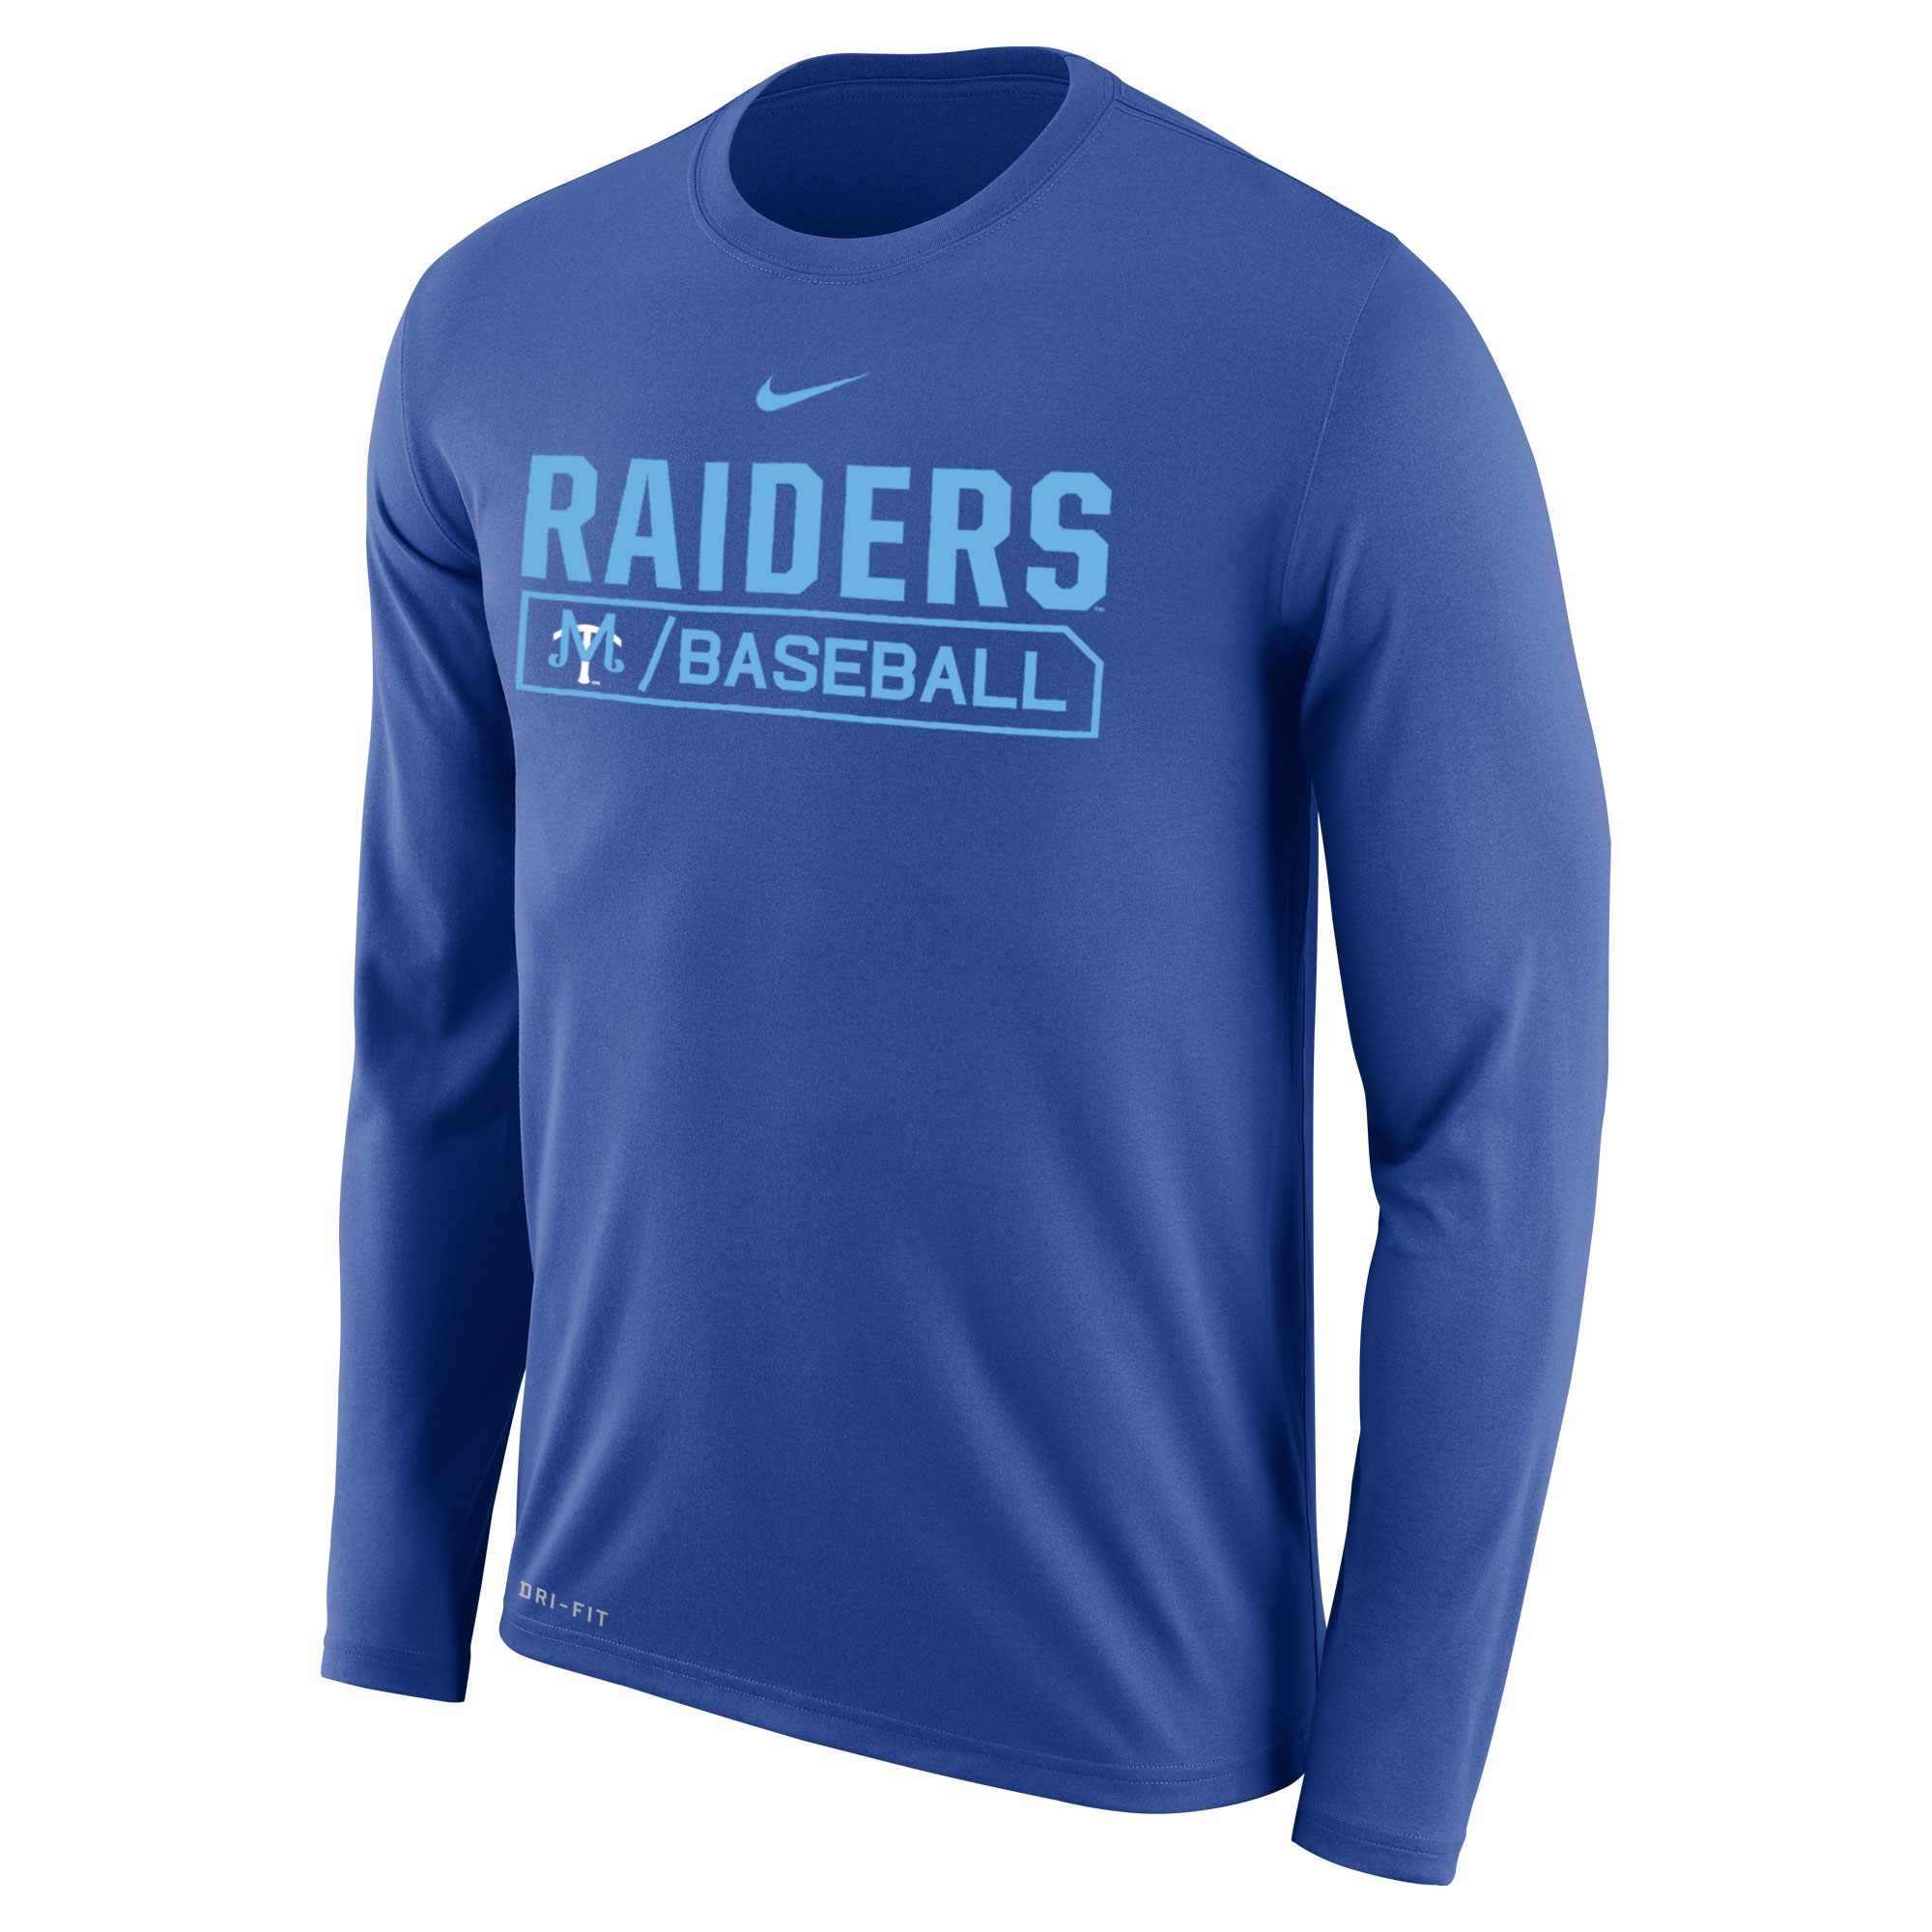 Raiders Baseball Dri Fit Legend Long Sleeve Shirt